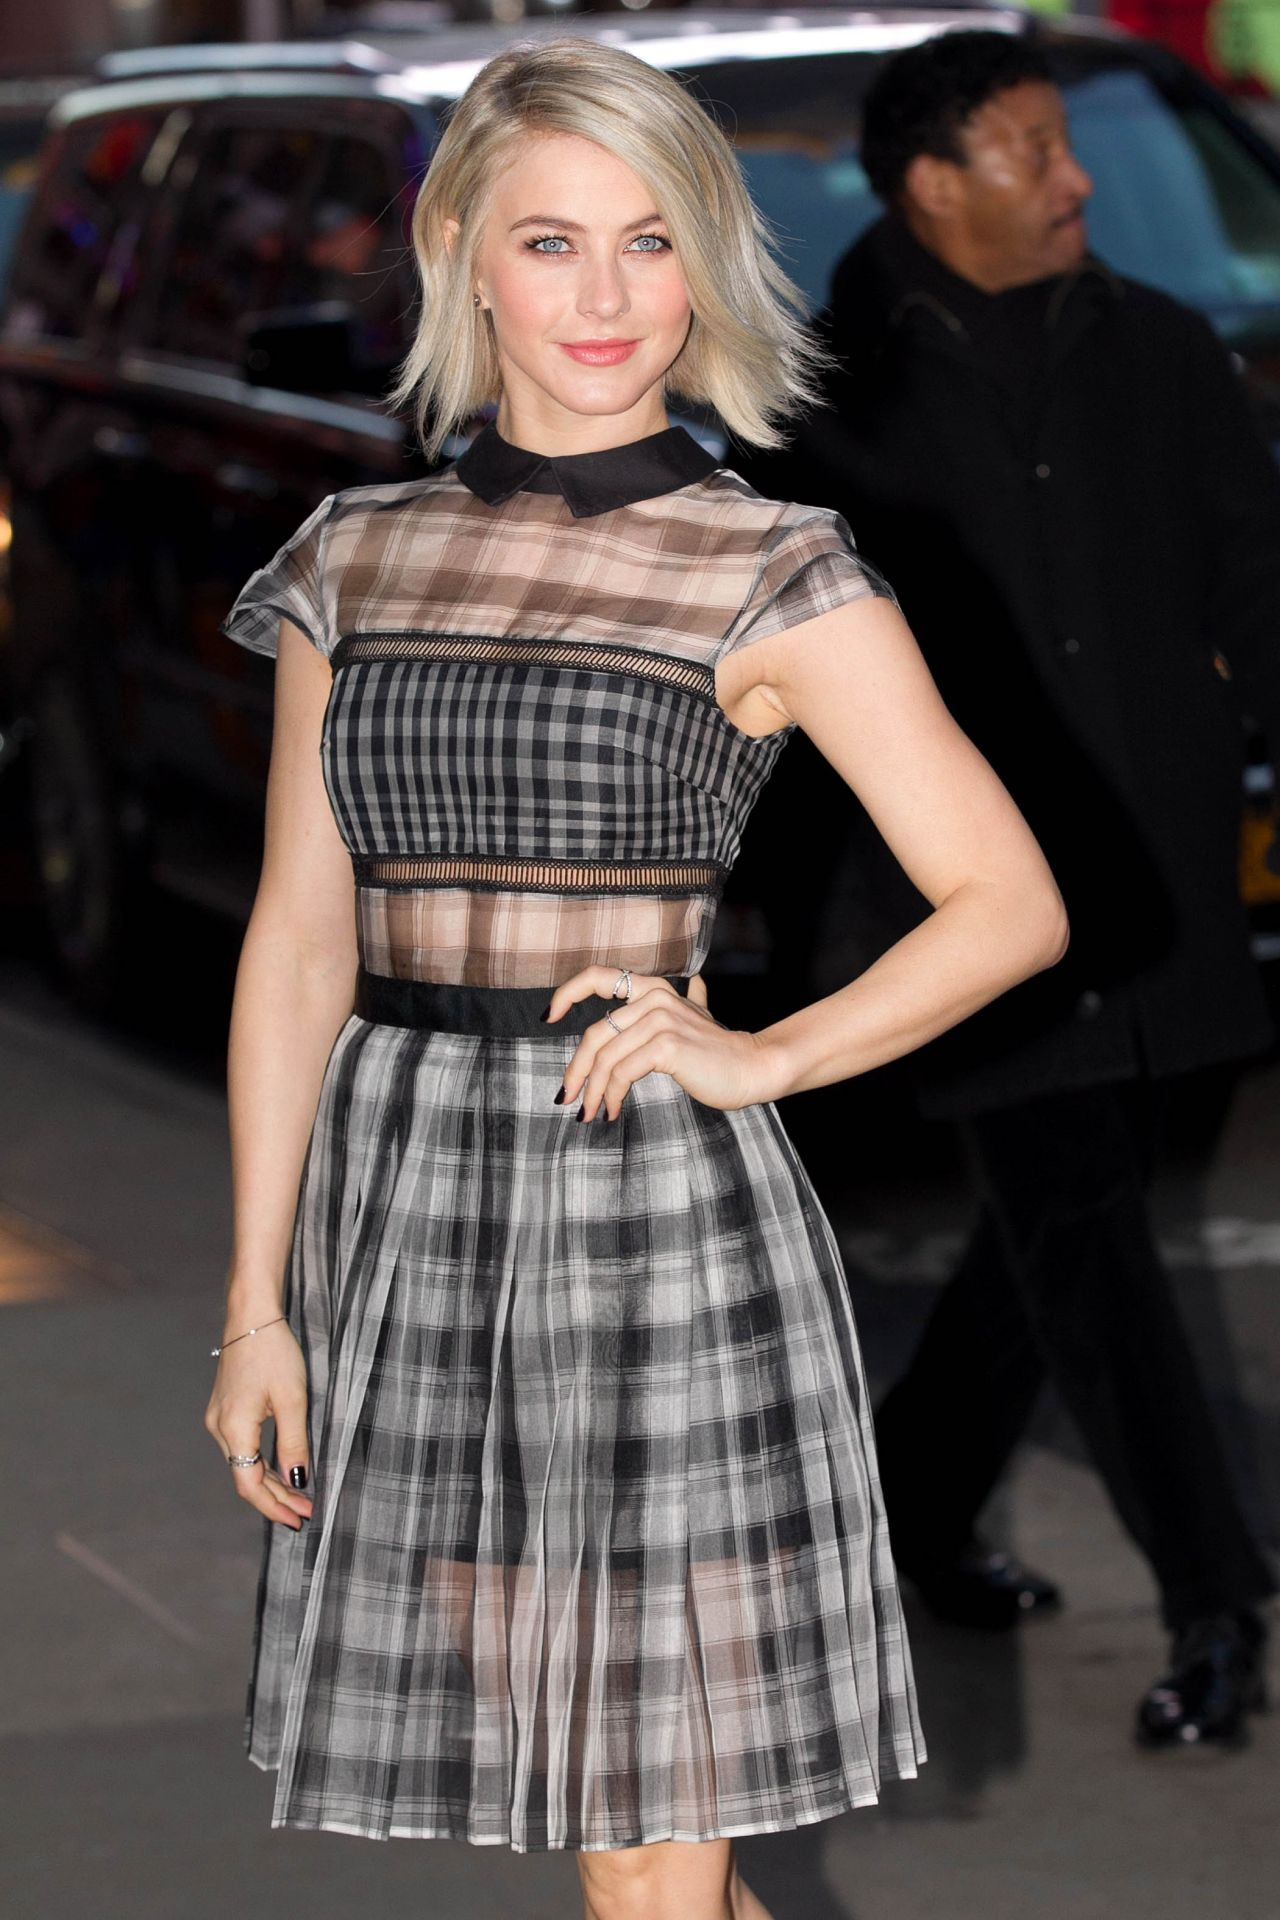 Julianne Hough Arriving to Appear on Good Morning America in New York City, March 2015